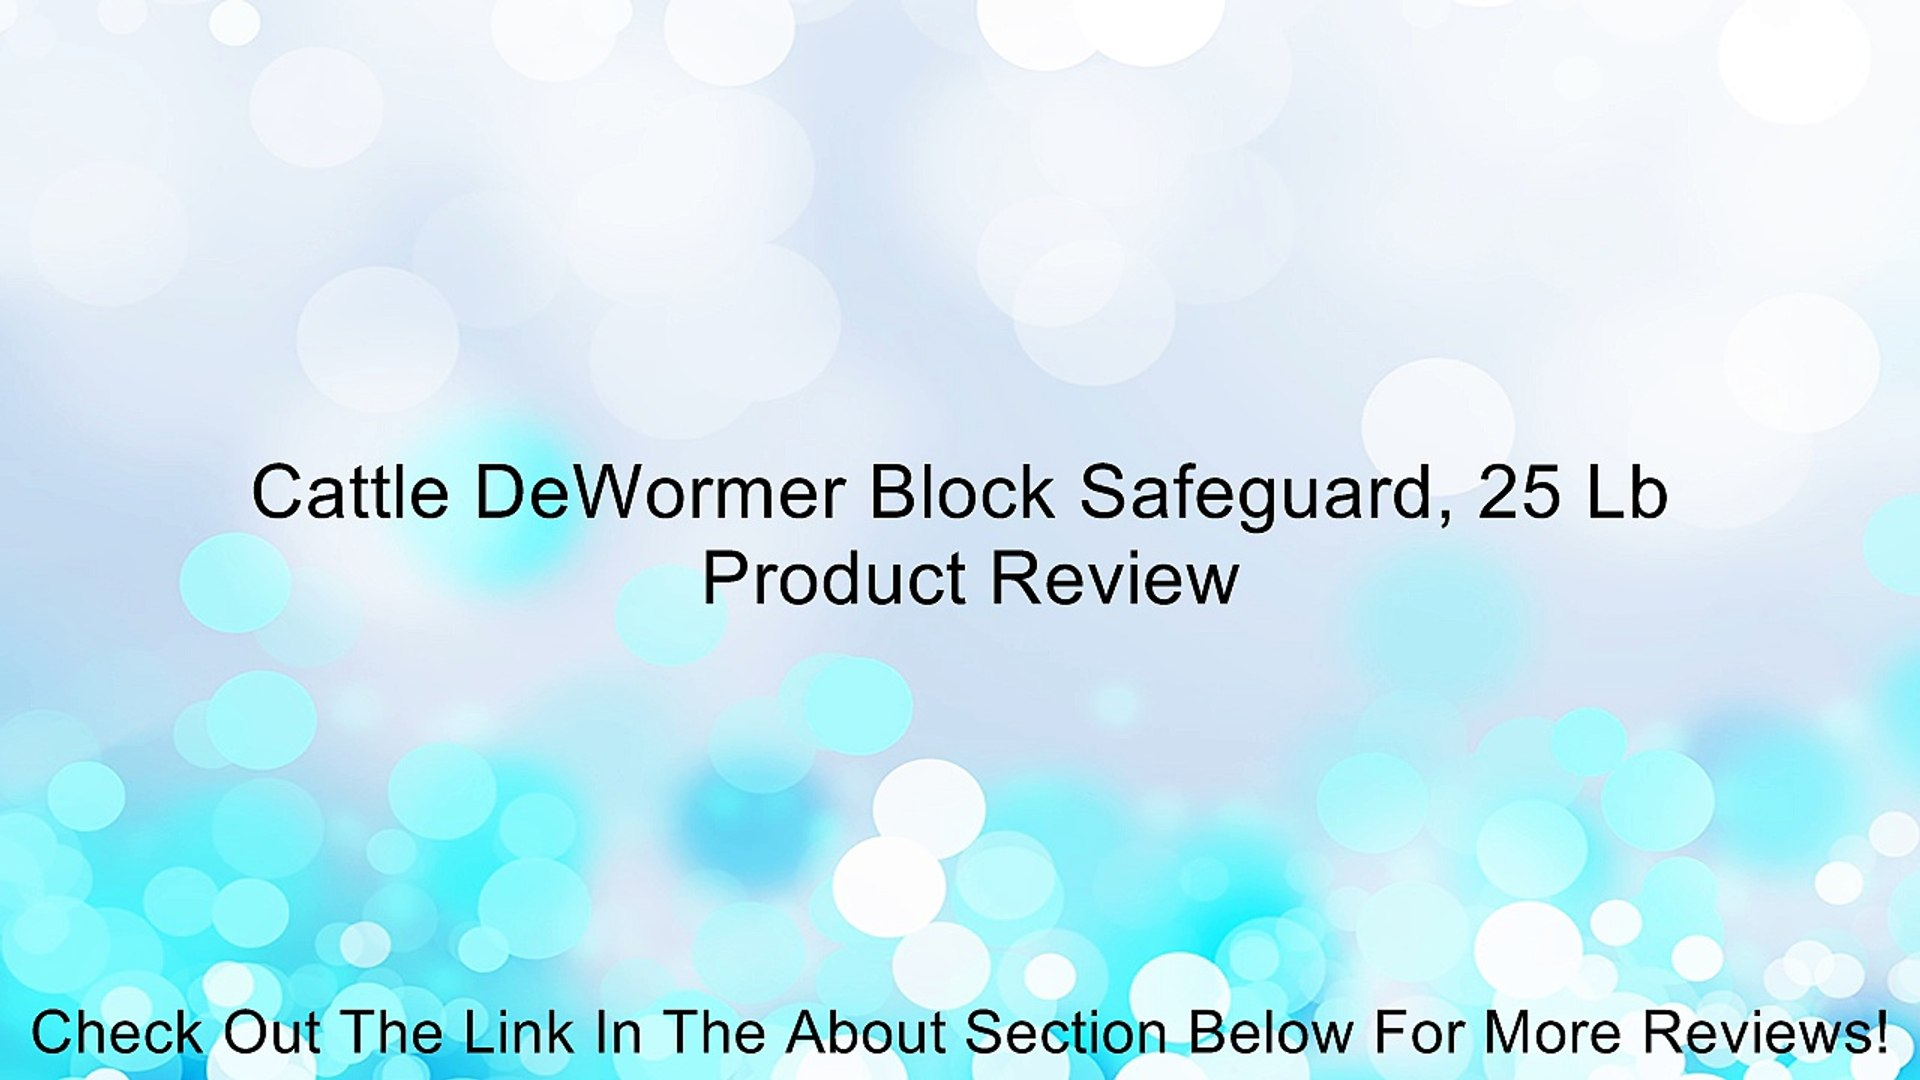 Cattle Dewormer Block Safeguard 25 Lb Review Video Dailymotion